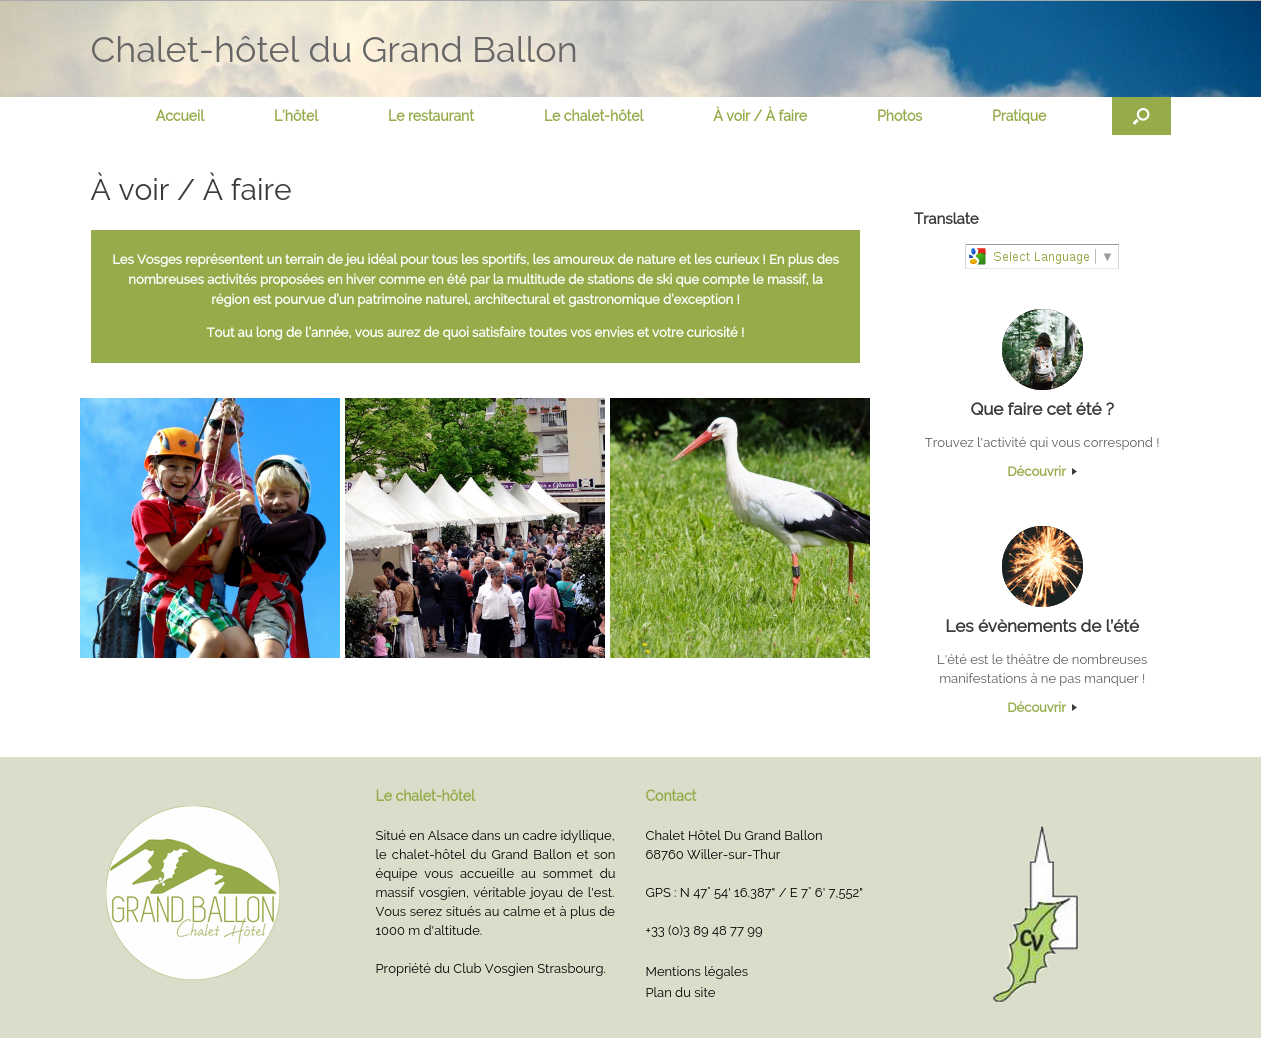 Grand Ballon (A voir/A Faire)